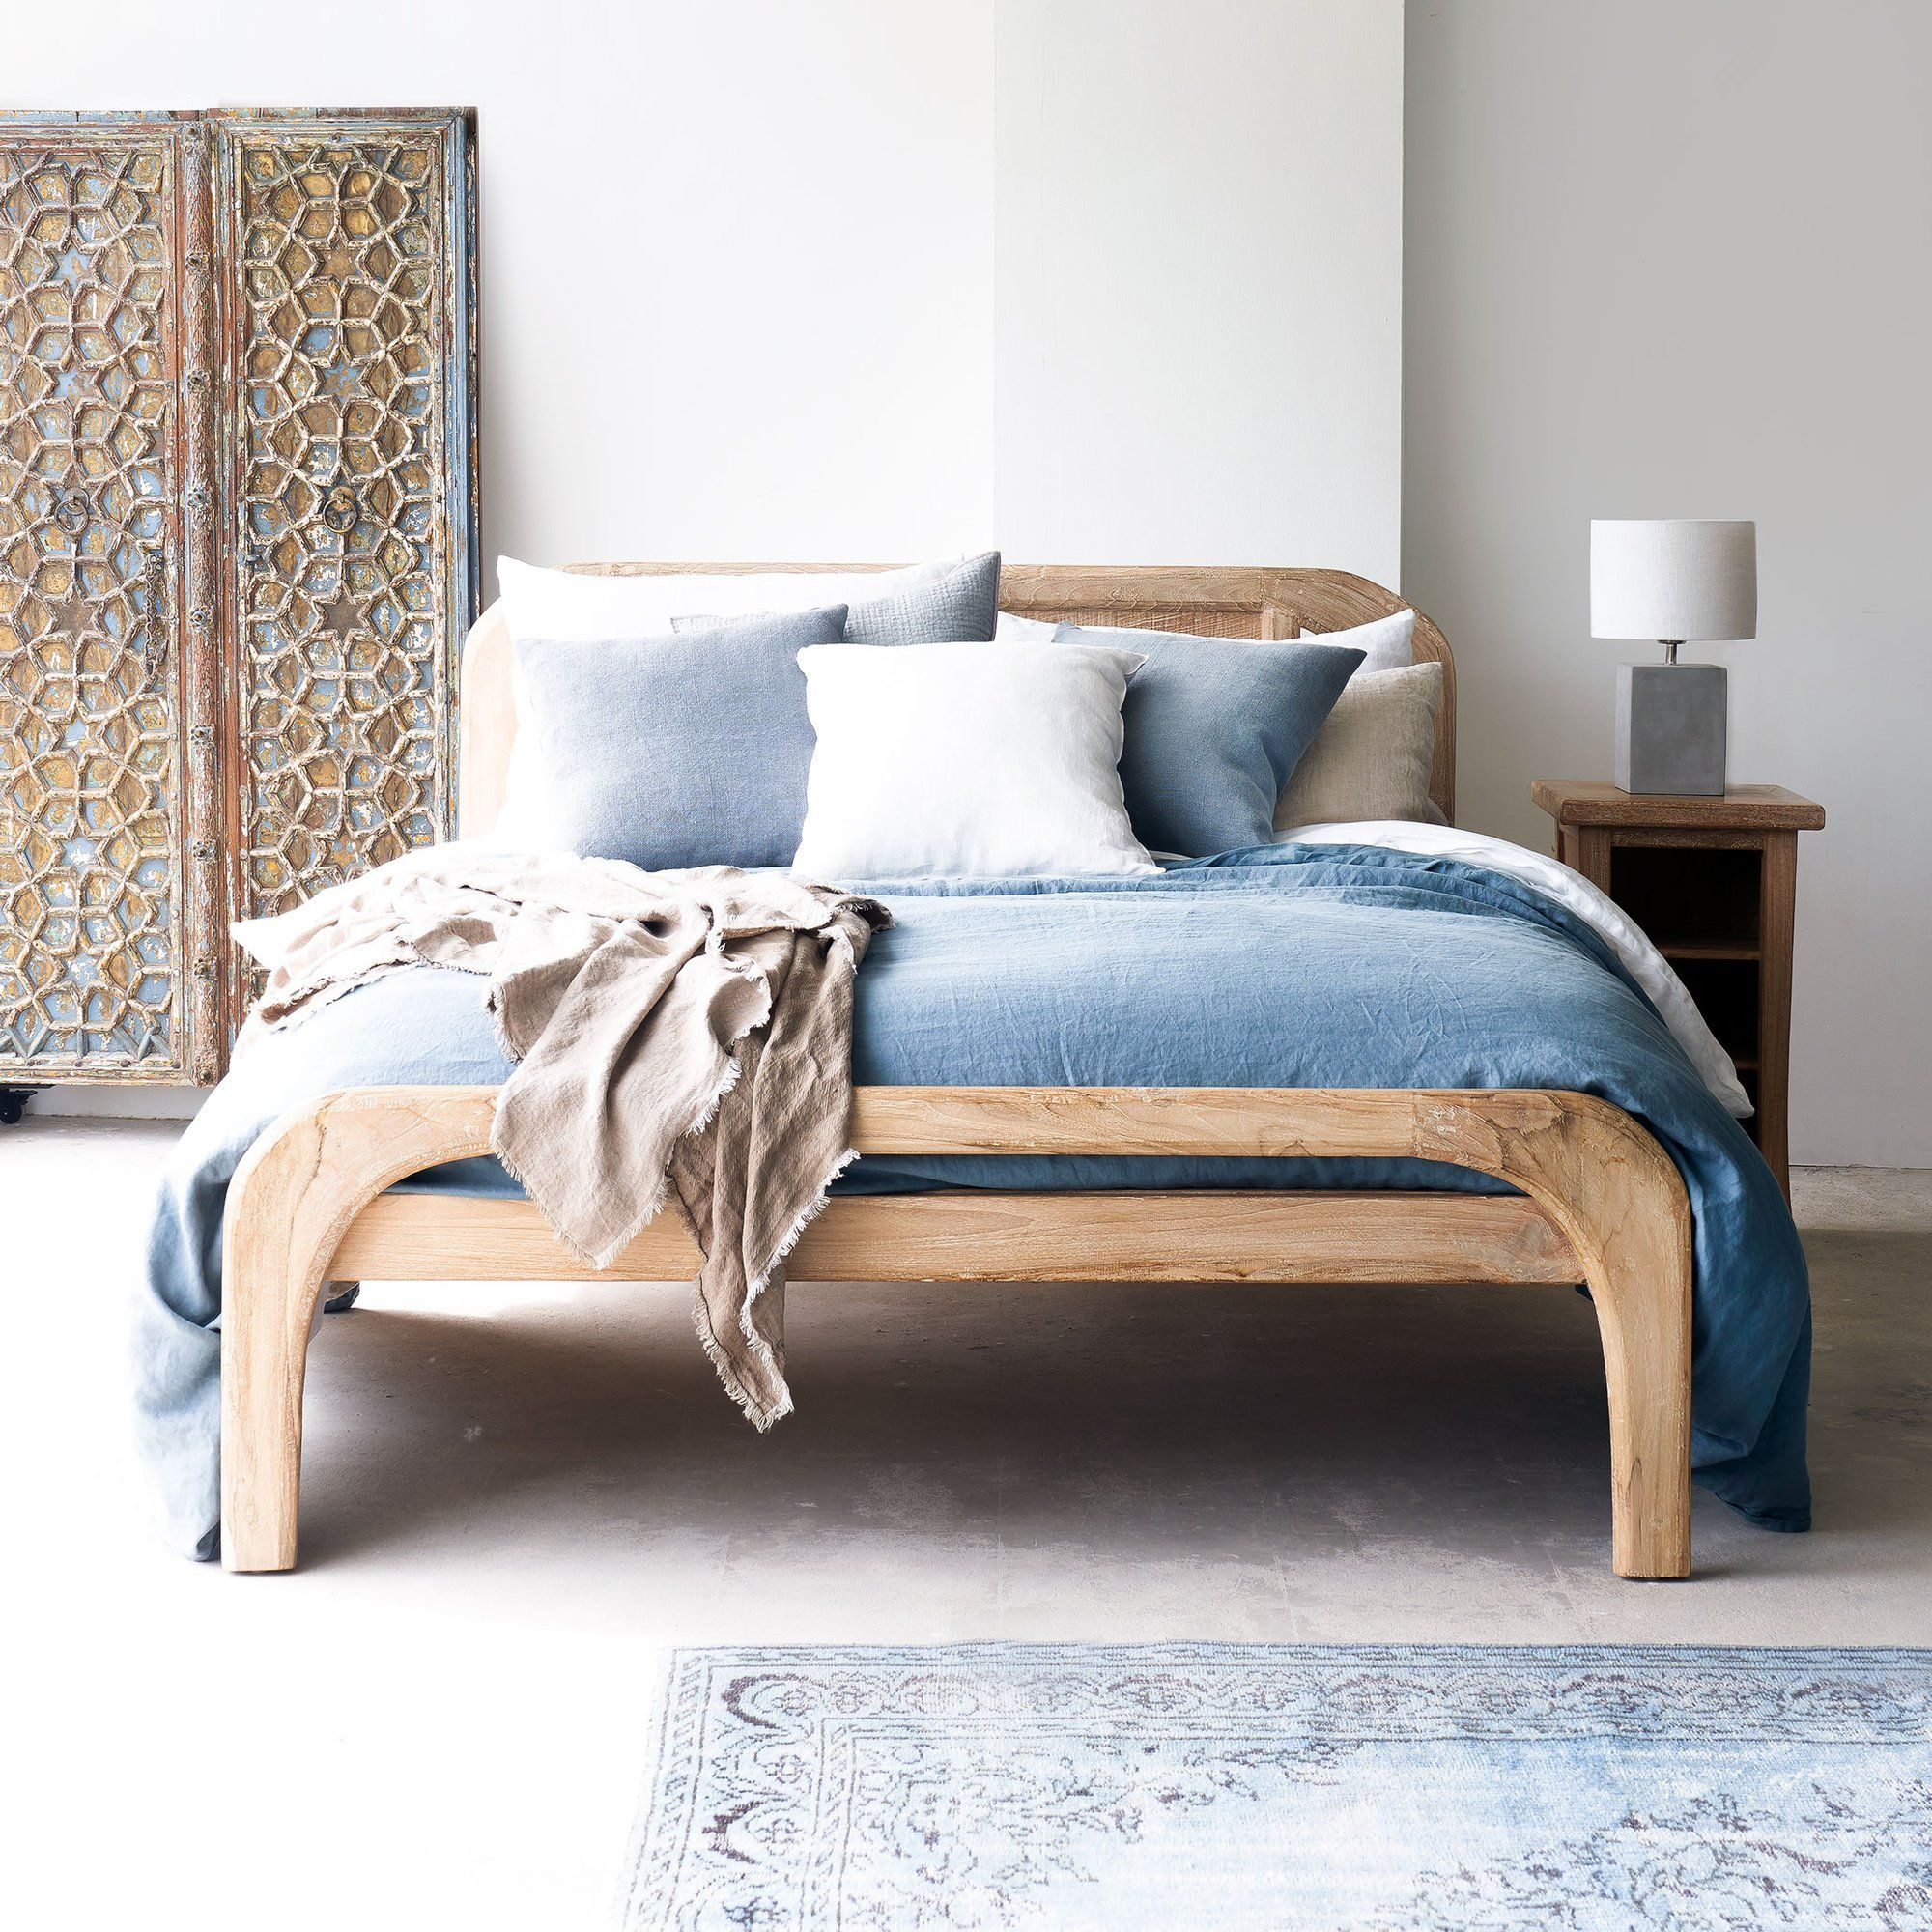 Teak Bed Frame Plough Bed Singapore Size Whitewash In 2020 Bed Frame Bed White Wash